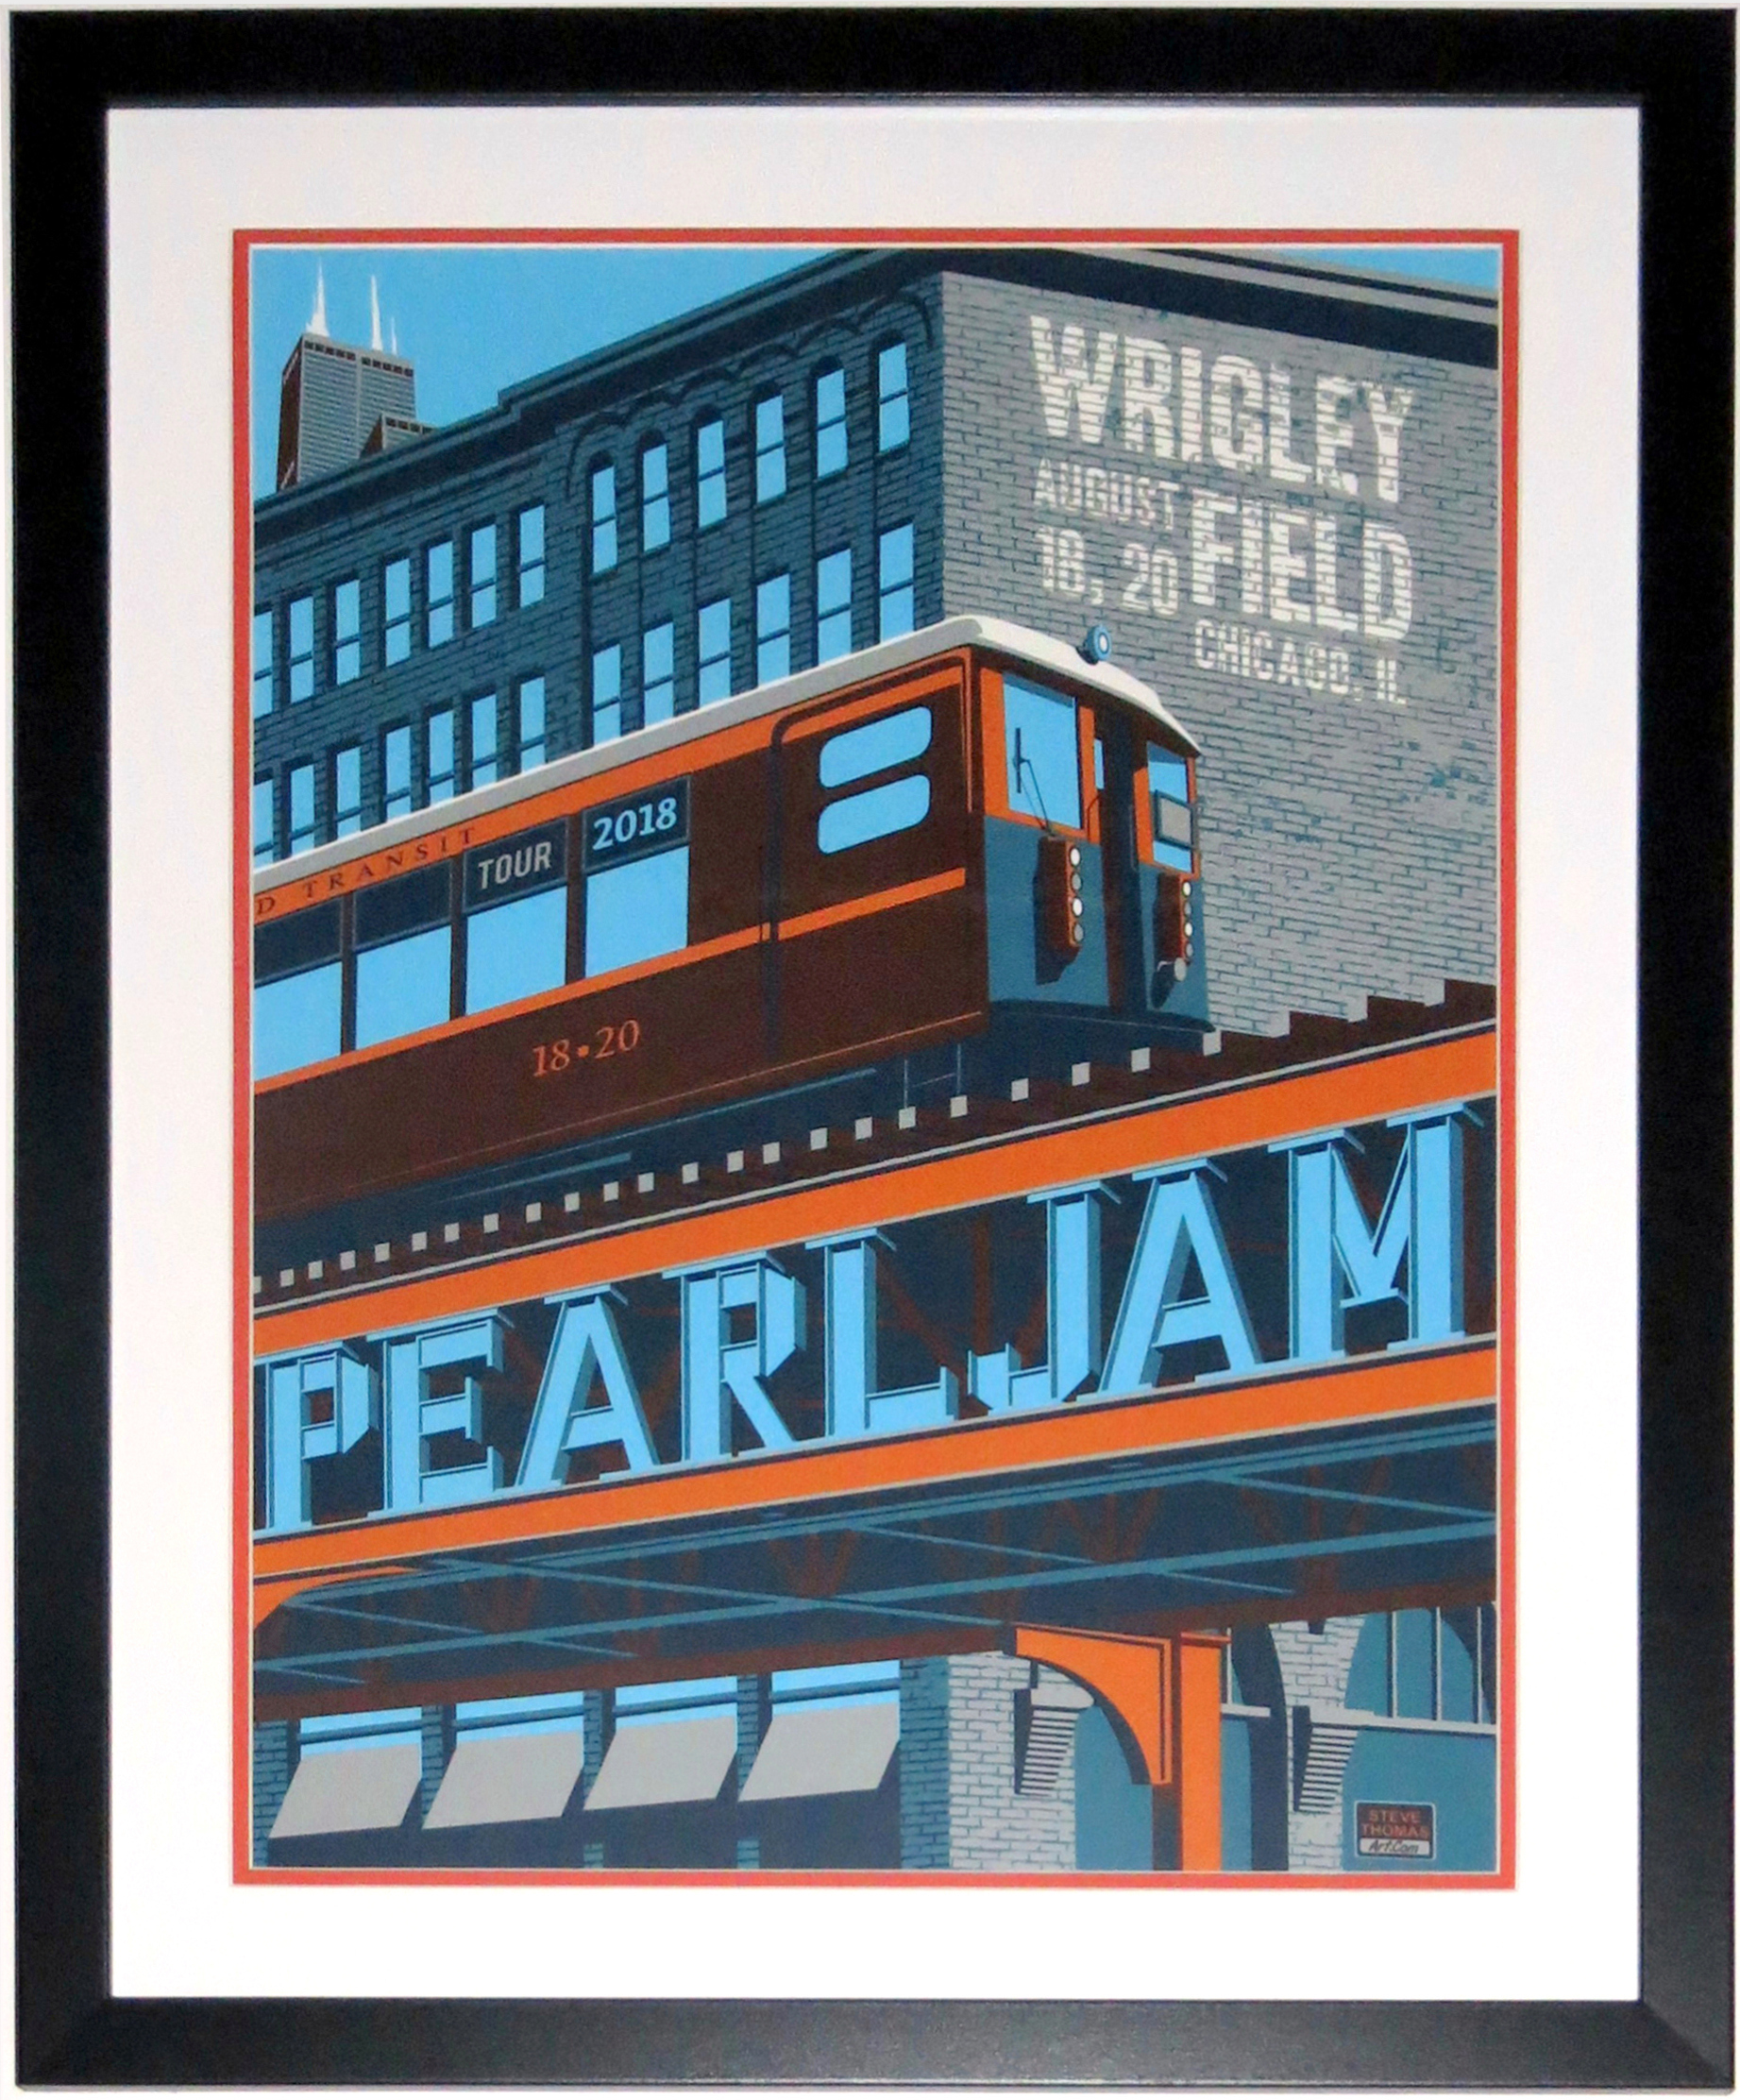 Pearl Jam Wrigley Field Chicago 2016 Tour Poster by Steve Thomas 8/18/18 -8/20/18 - Professionally Framed